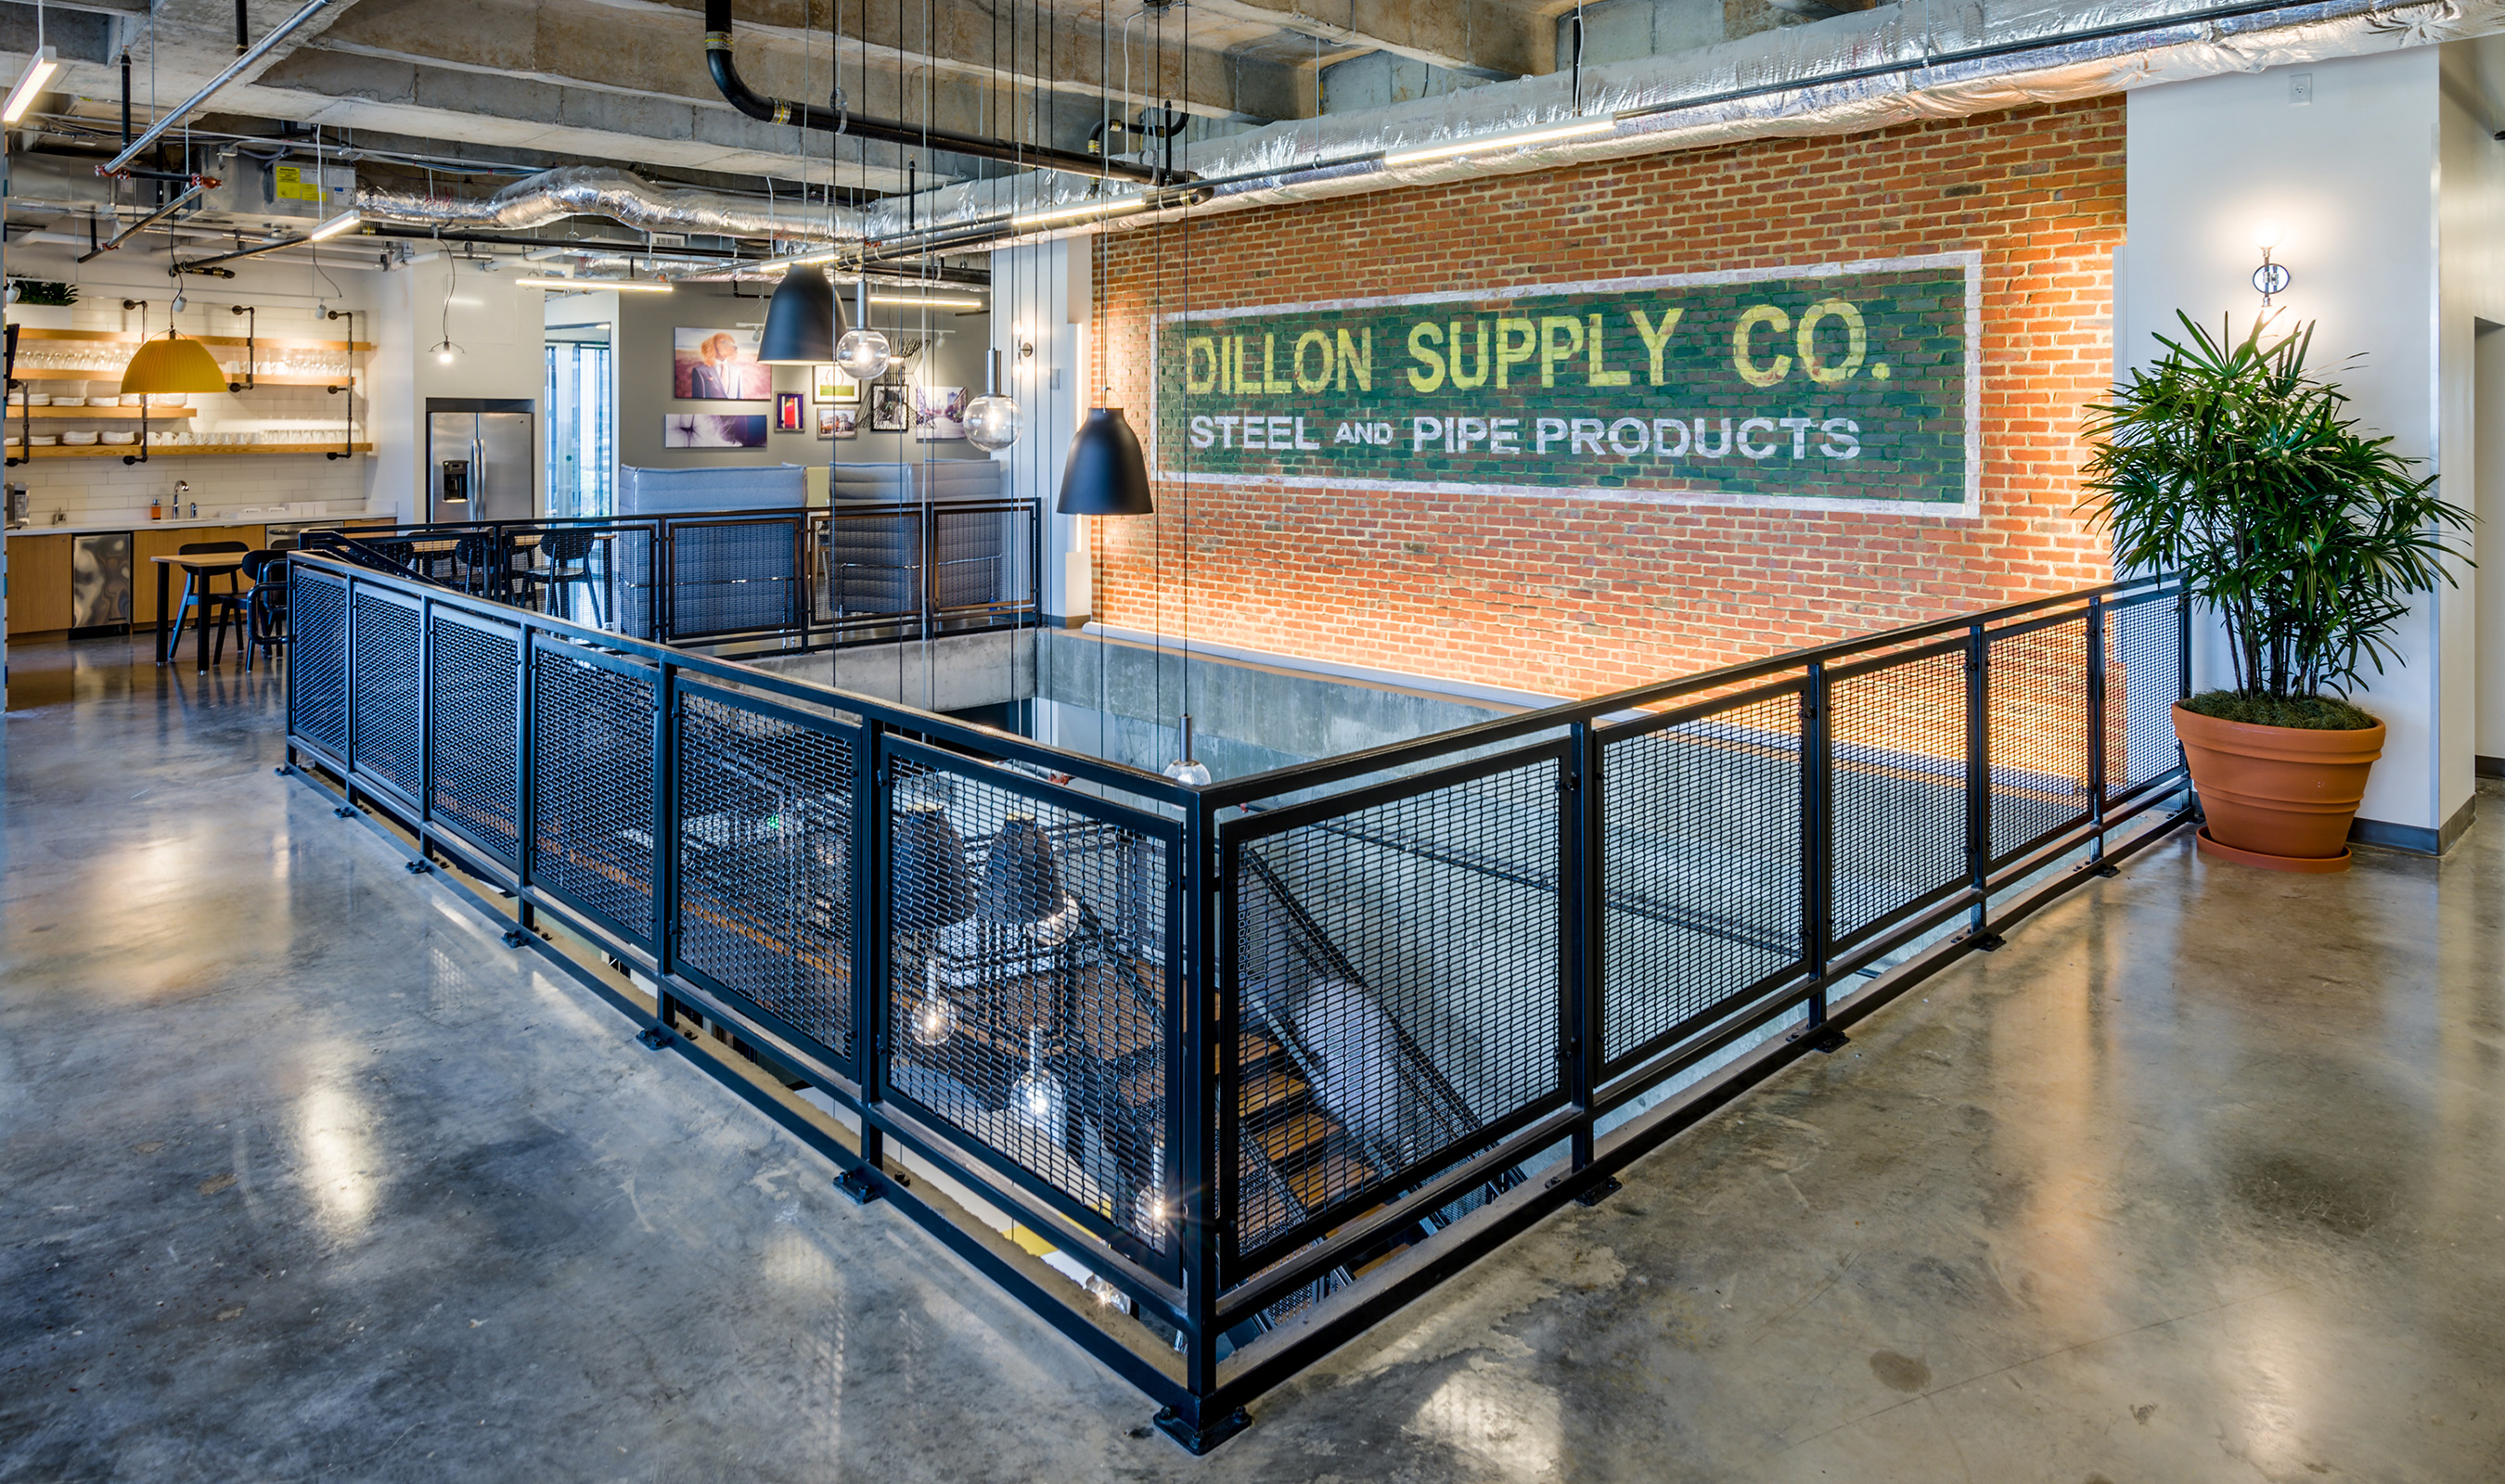 FPZ-16 provides a durable railing infill for the Spaces at the Dillon.